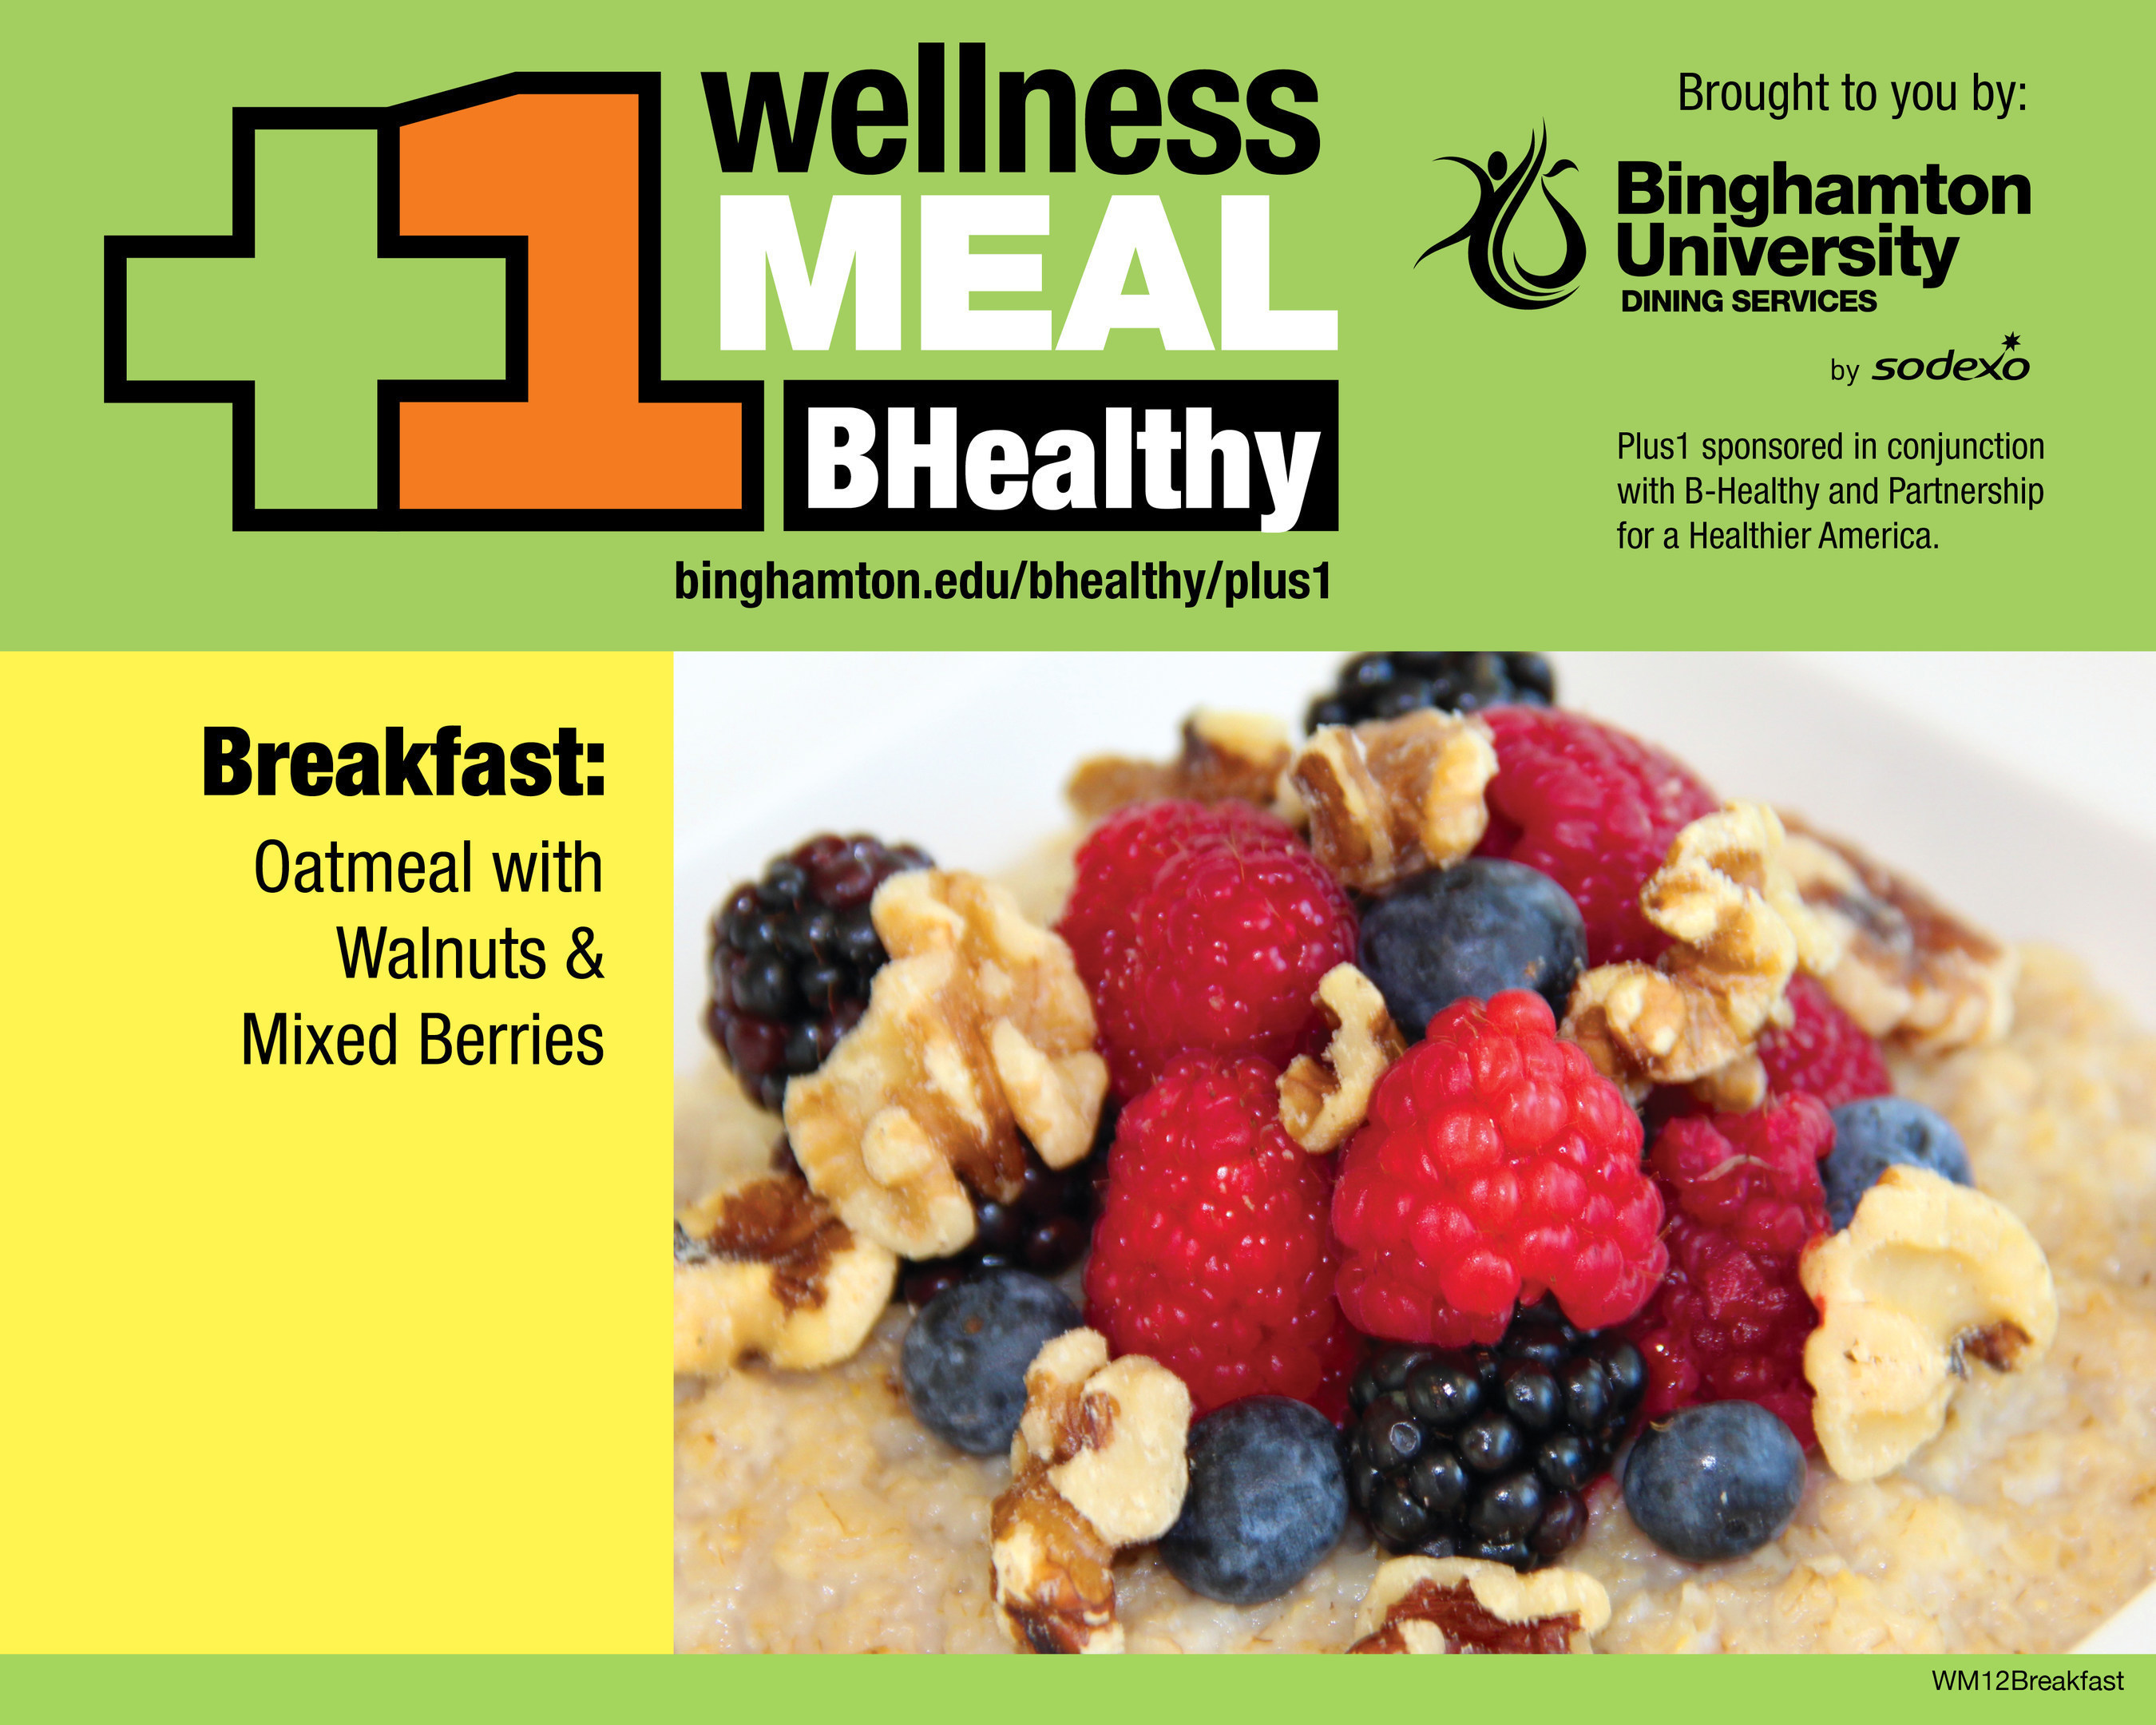 B-Healthy Wellness Meal at Binghamton University - Oatmeal with Walnuts and Mixed Berries